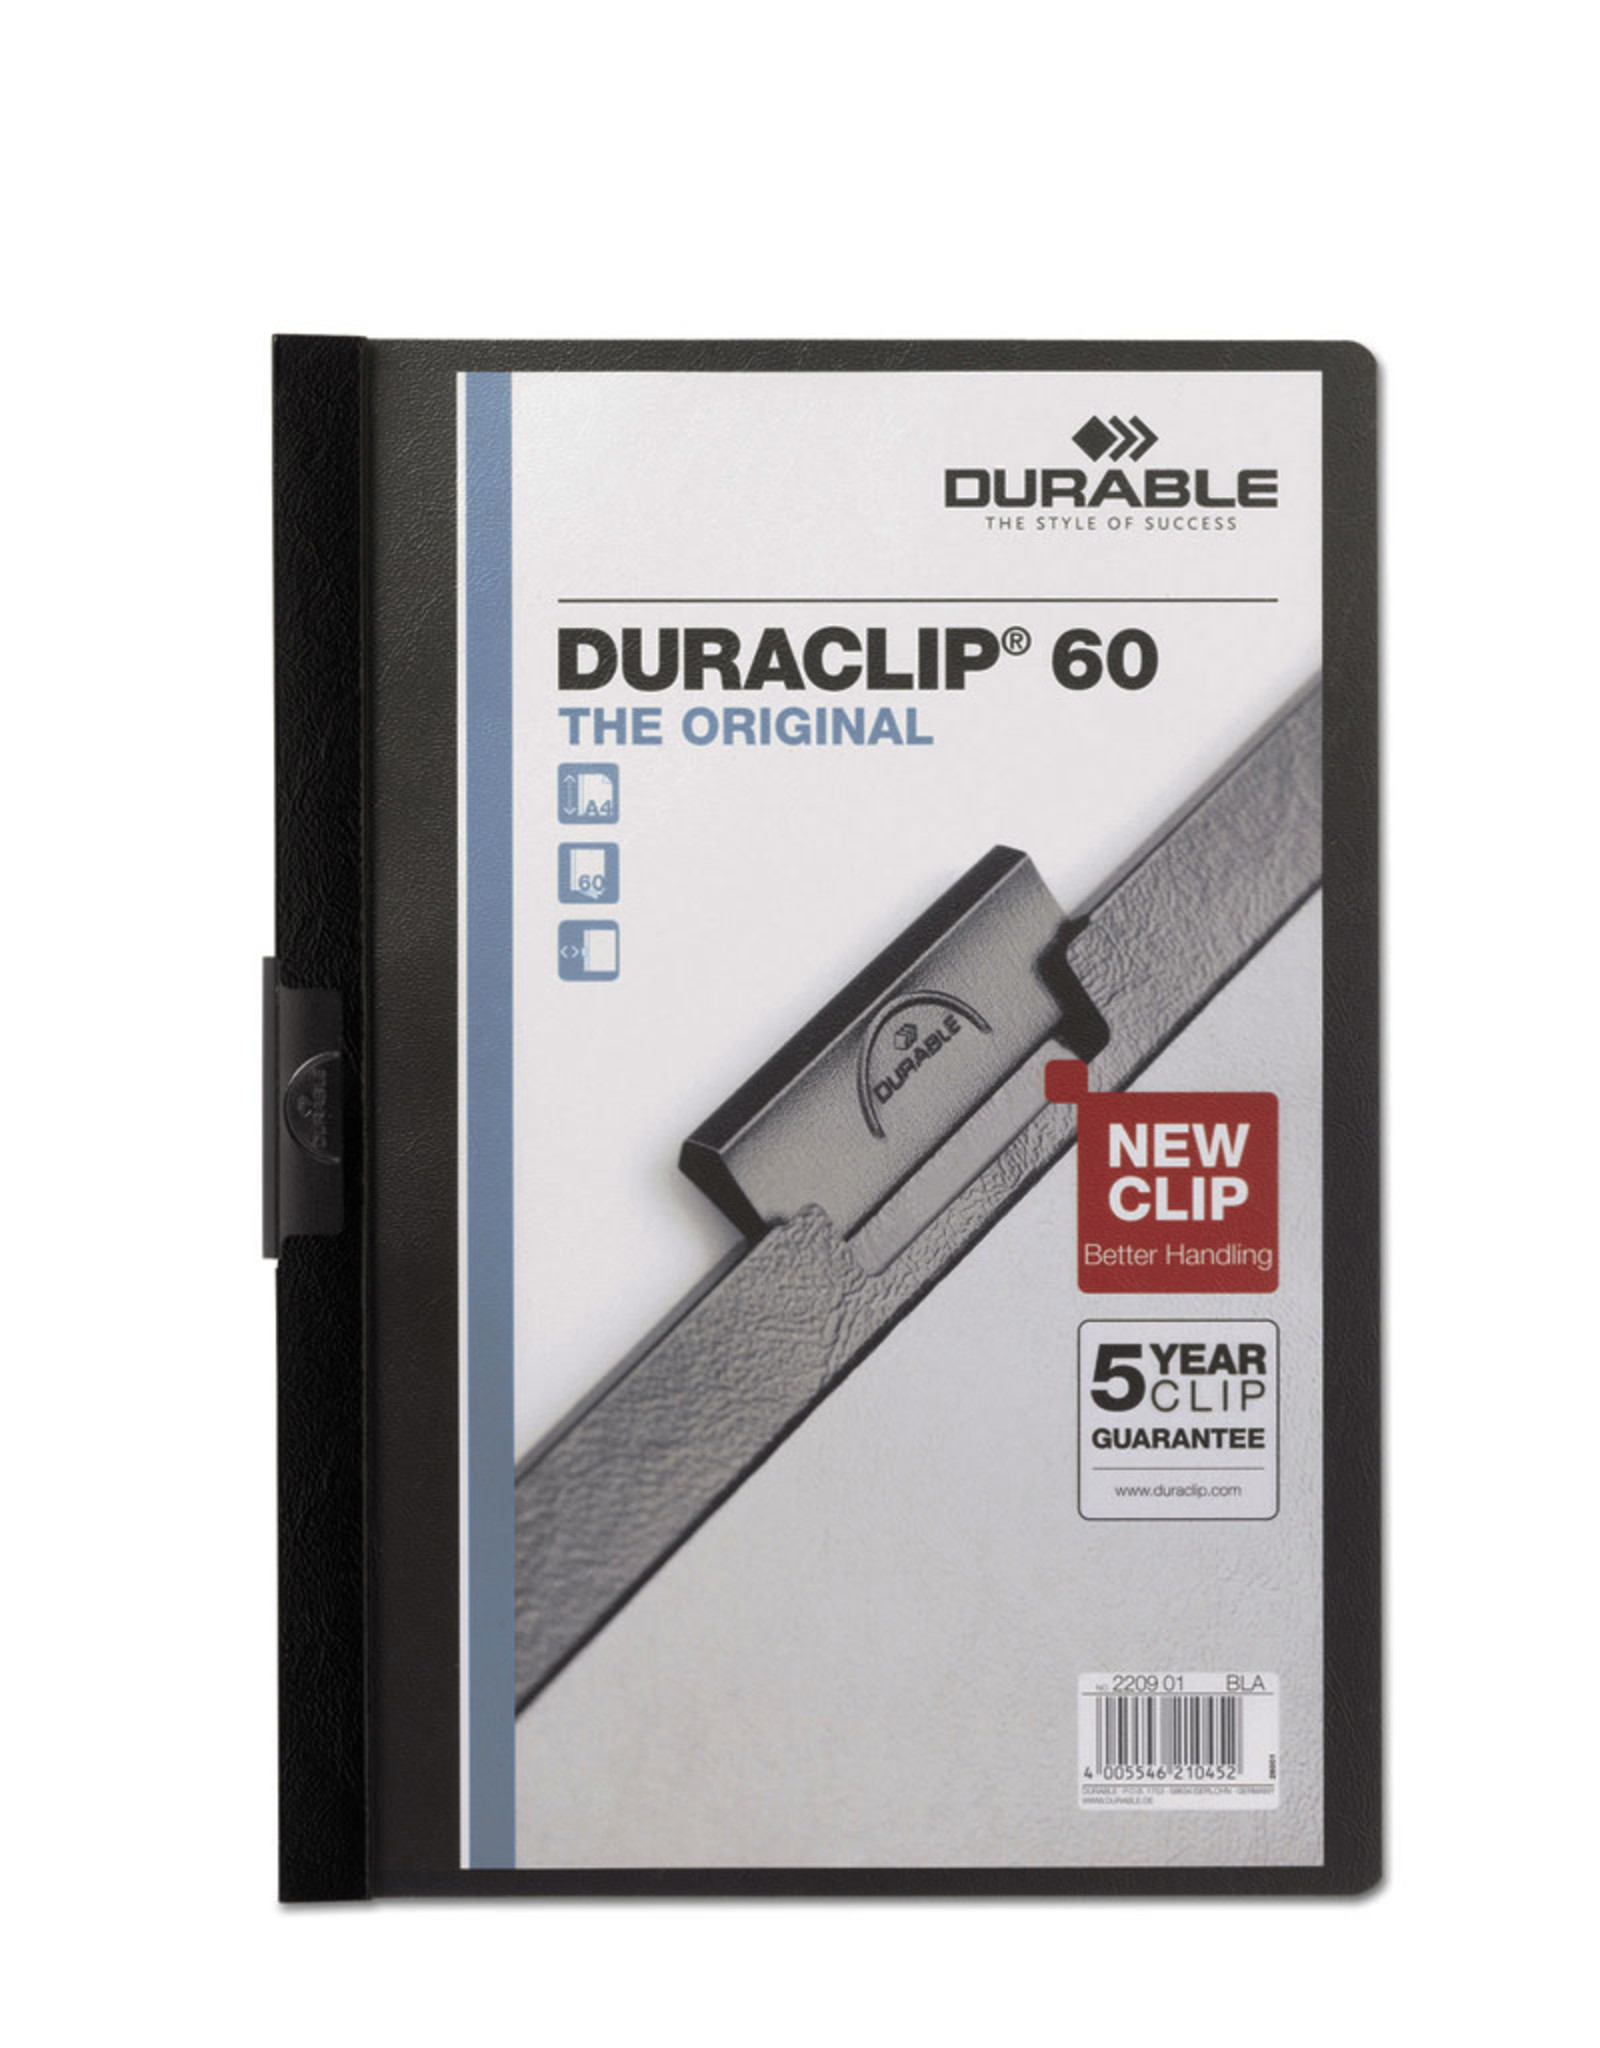 Durable Duraclip 60 Report Cover